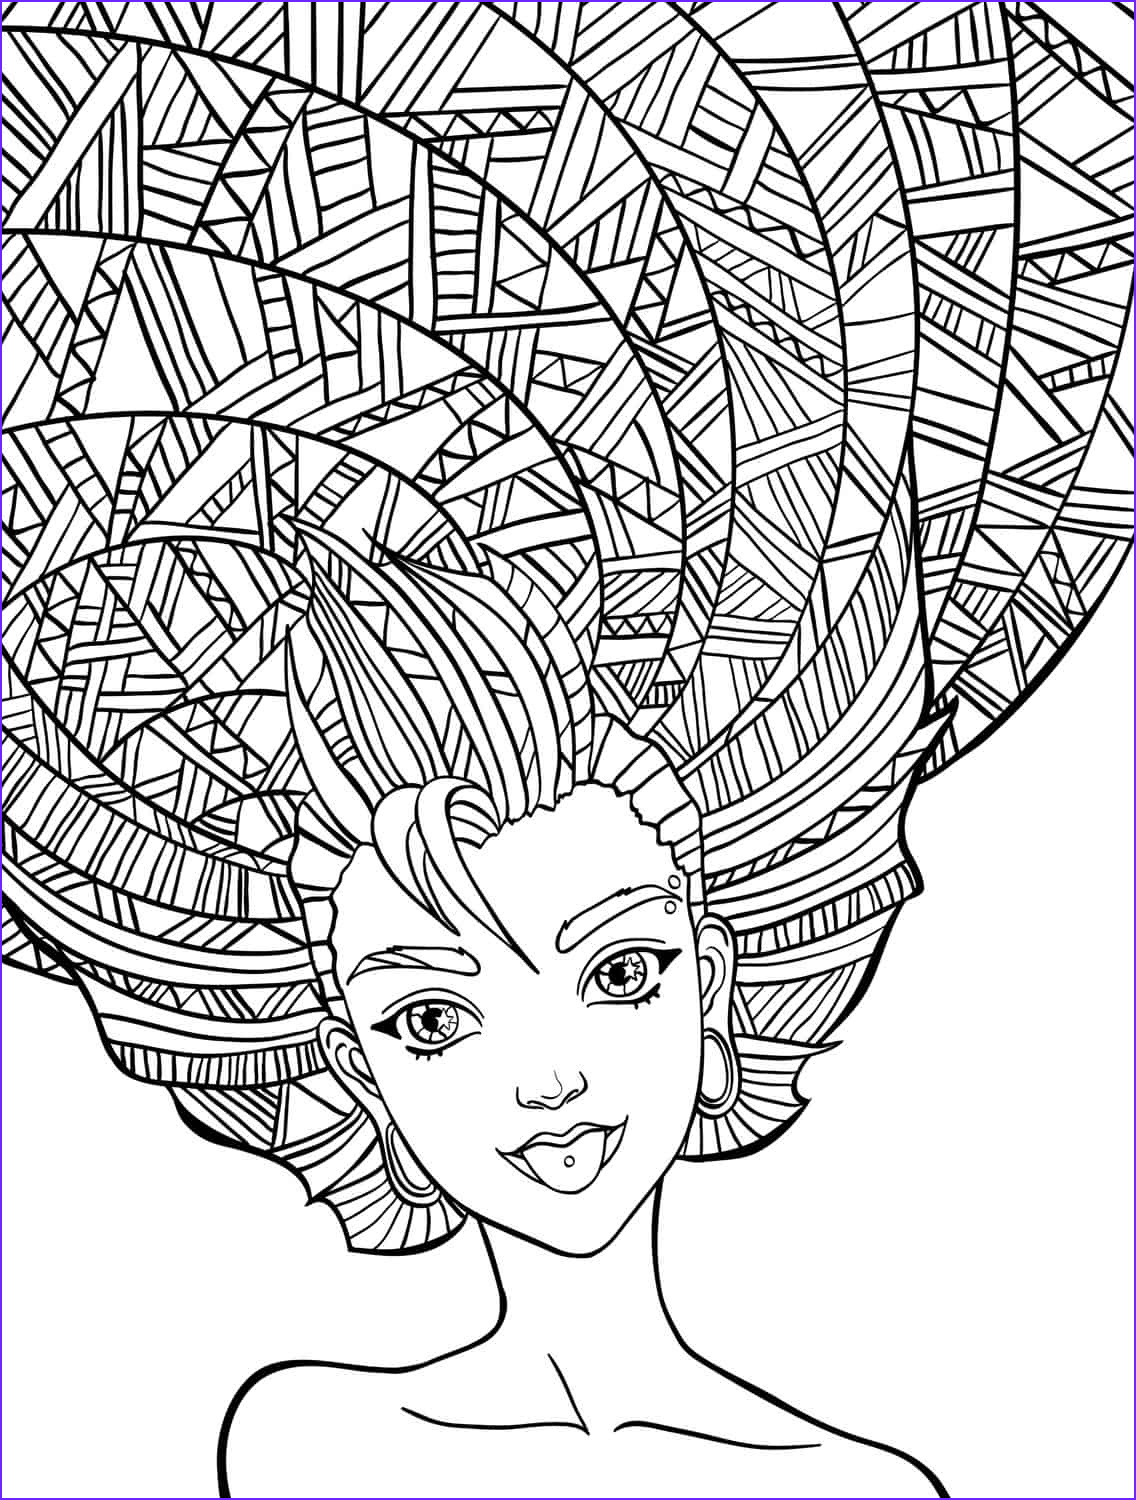 Coloring Pictures for Adults Awesome Photos 10 Crazy Hair Adult Coloring Pages Page 9 Of 12 Nerdy